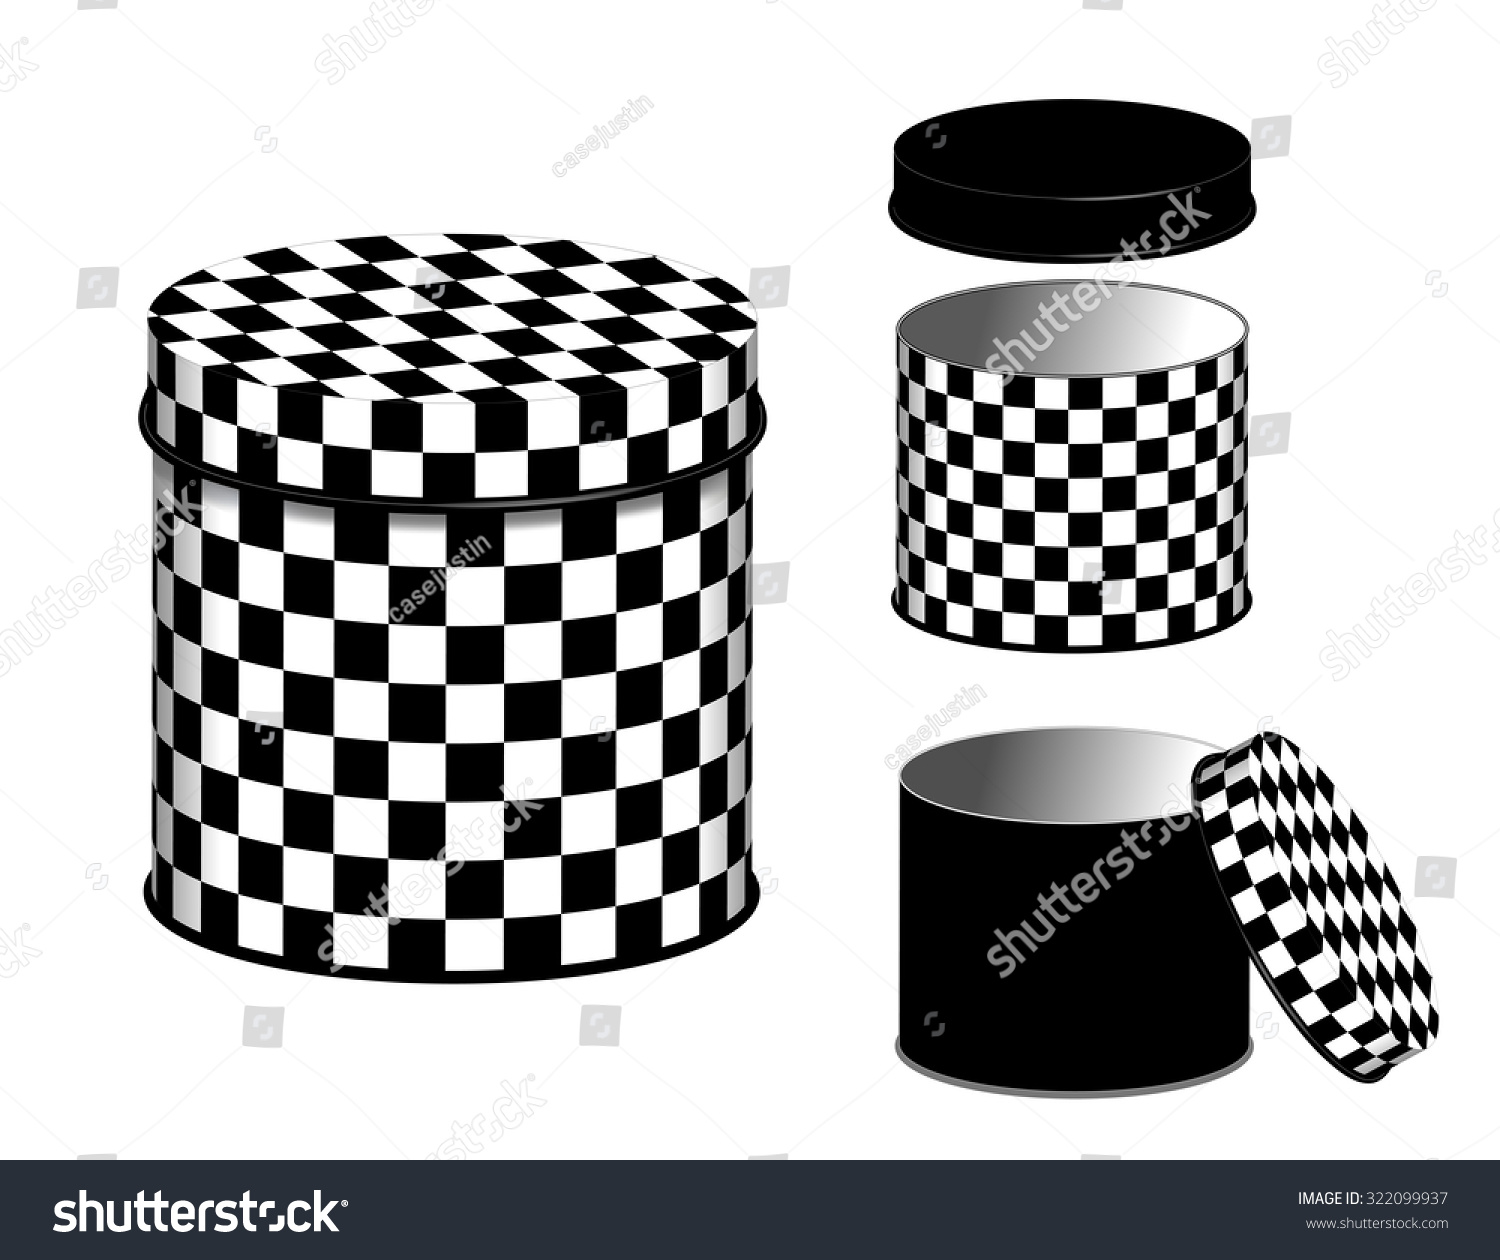 Kitchen Canisters Checkerboard Design Food Storage Stock Illustration 322099937